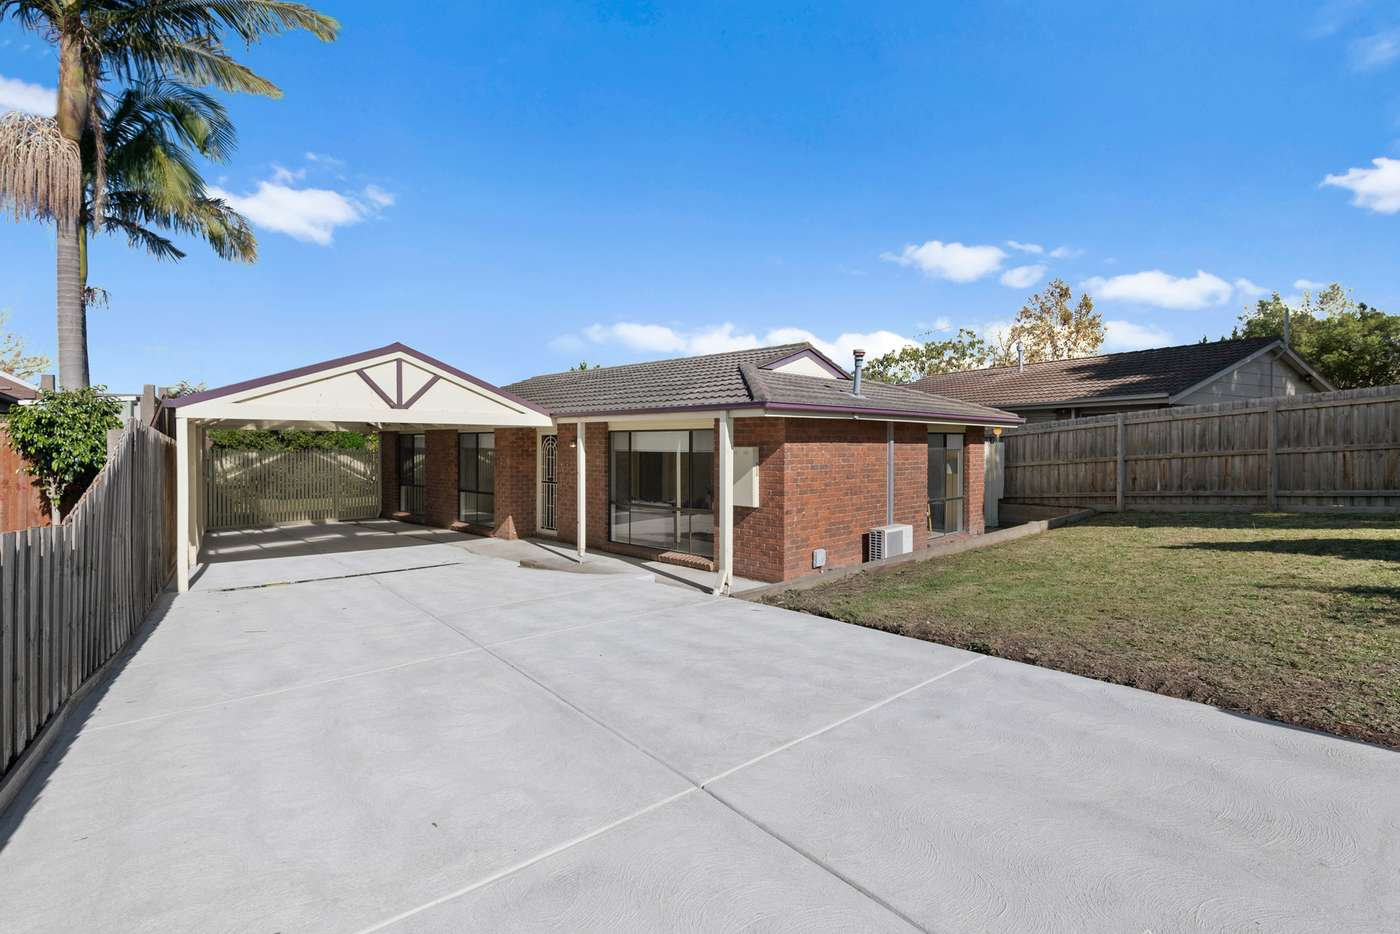 Main view of Homely house listing, 55 Amber Crescent, Narre Warren VIC 3805